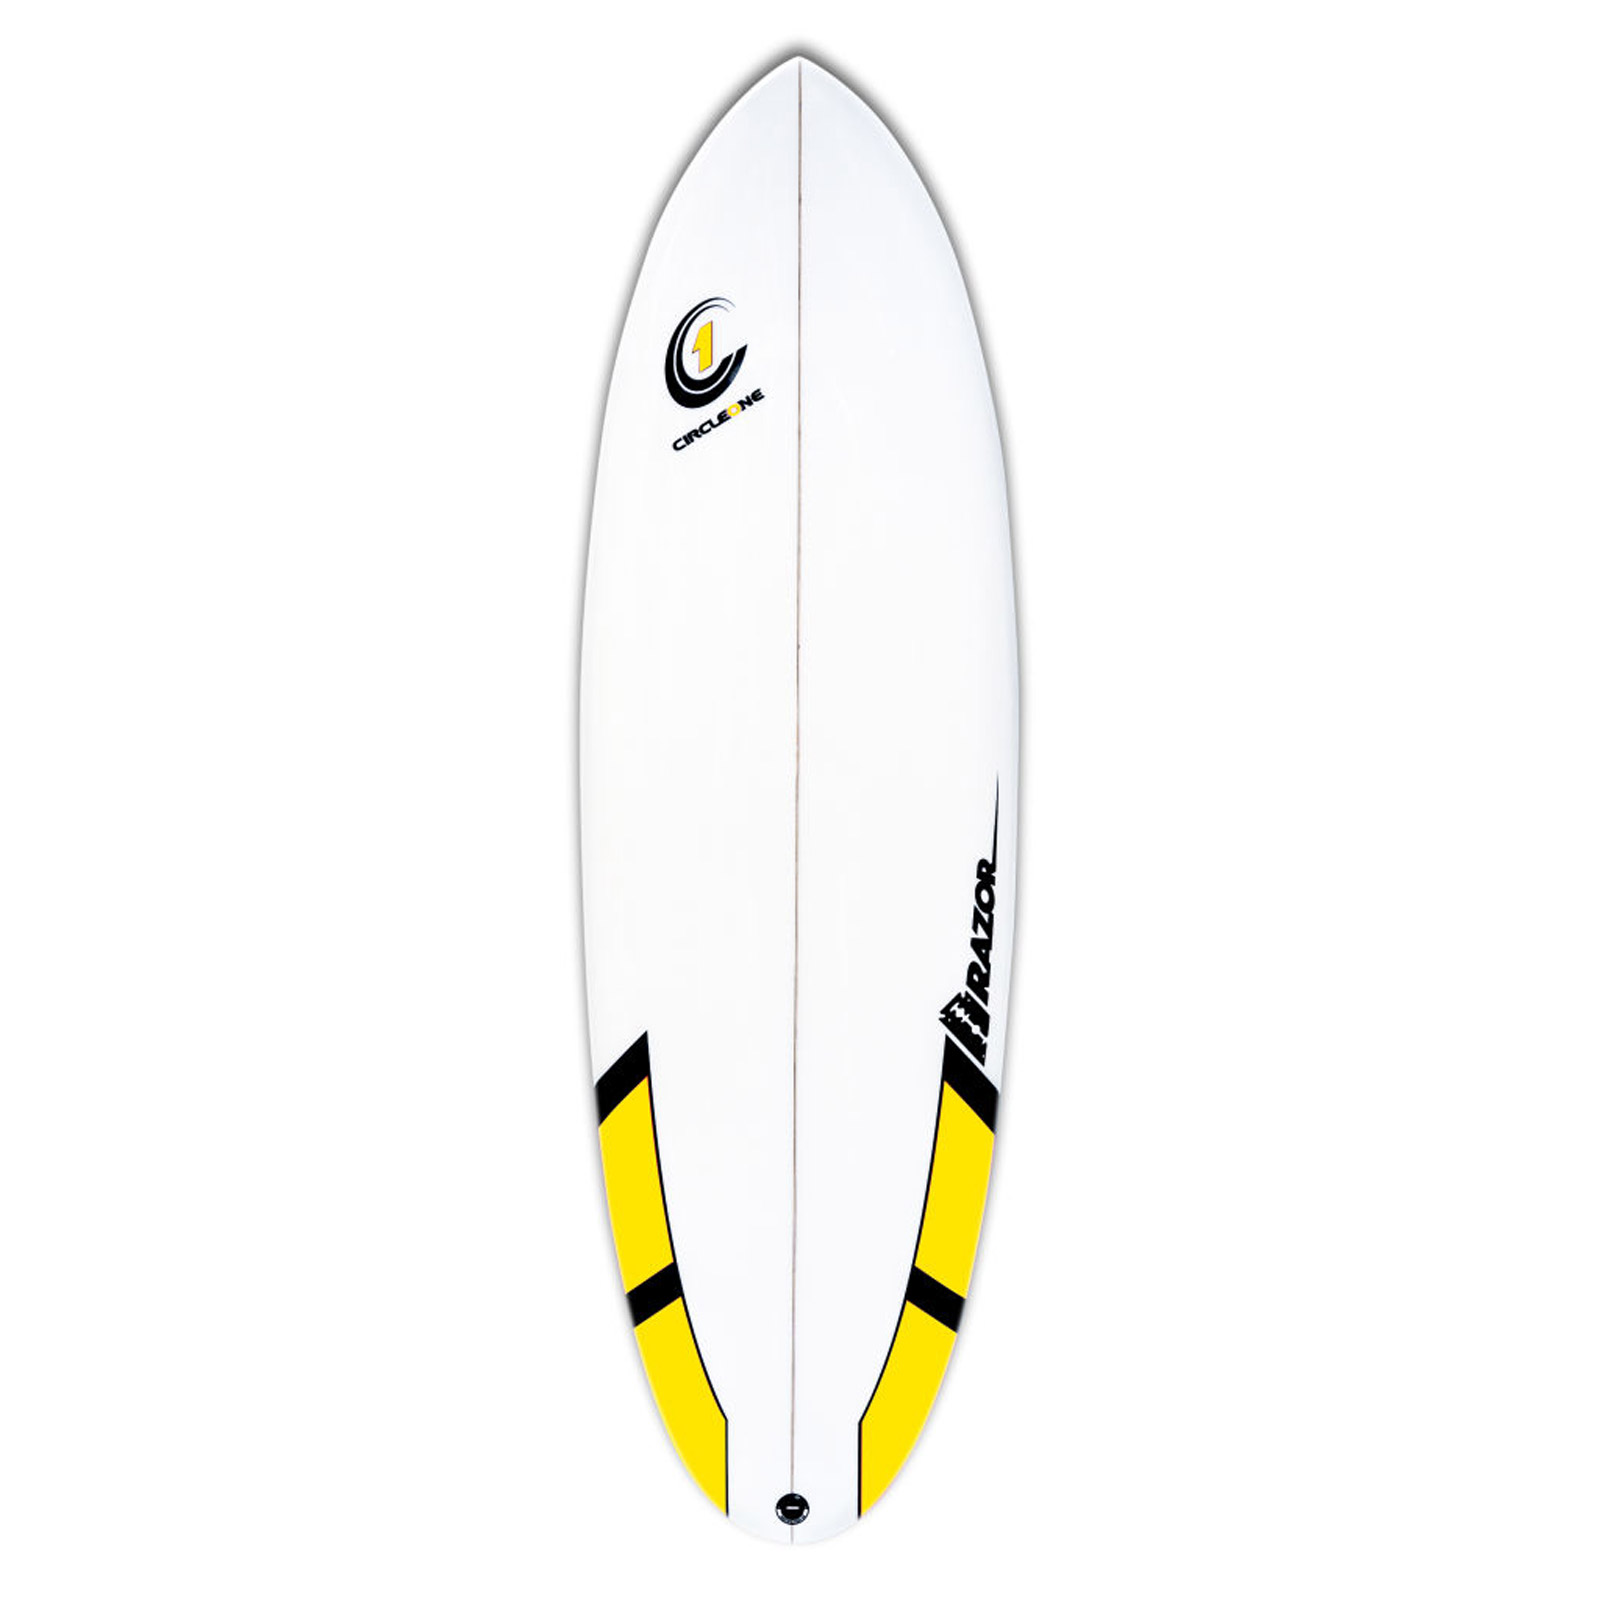 6ft Razor Surfboard - Round Tail Shortboard - Gloss Finish